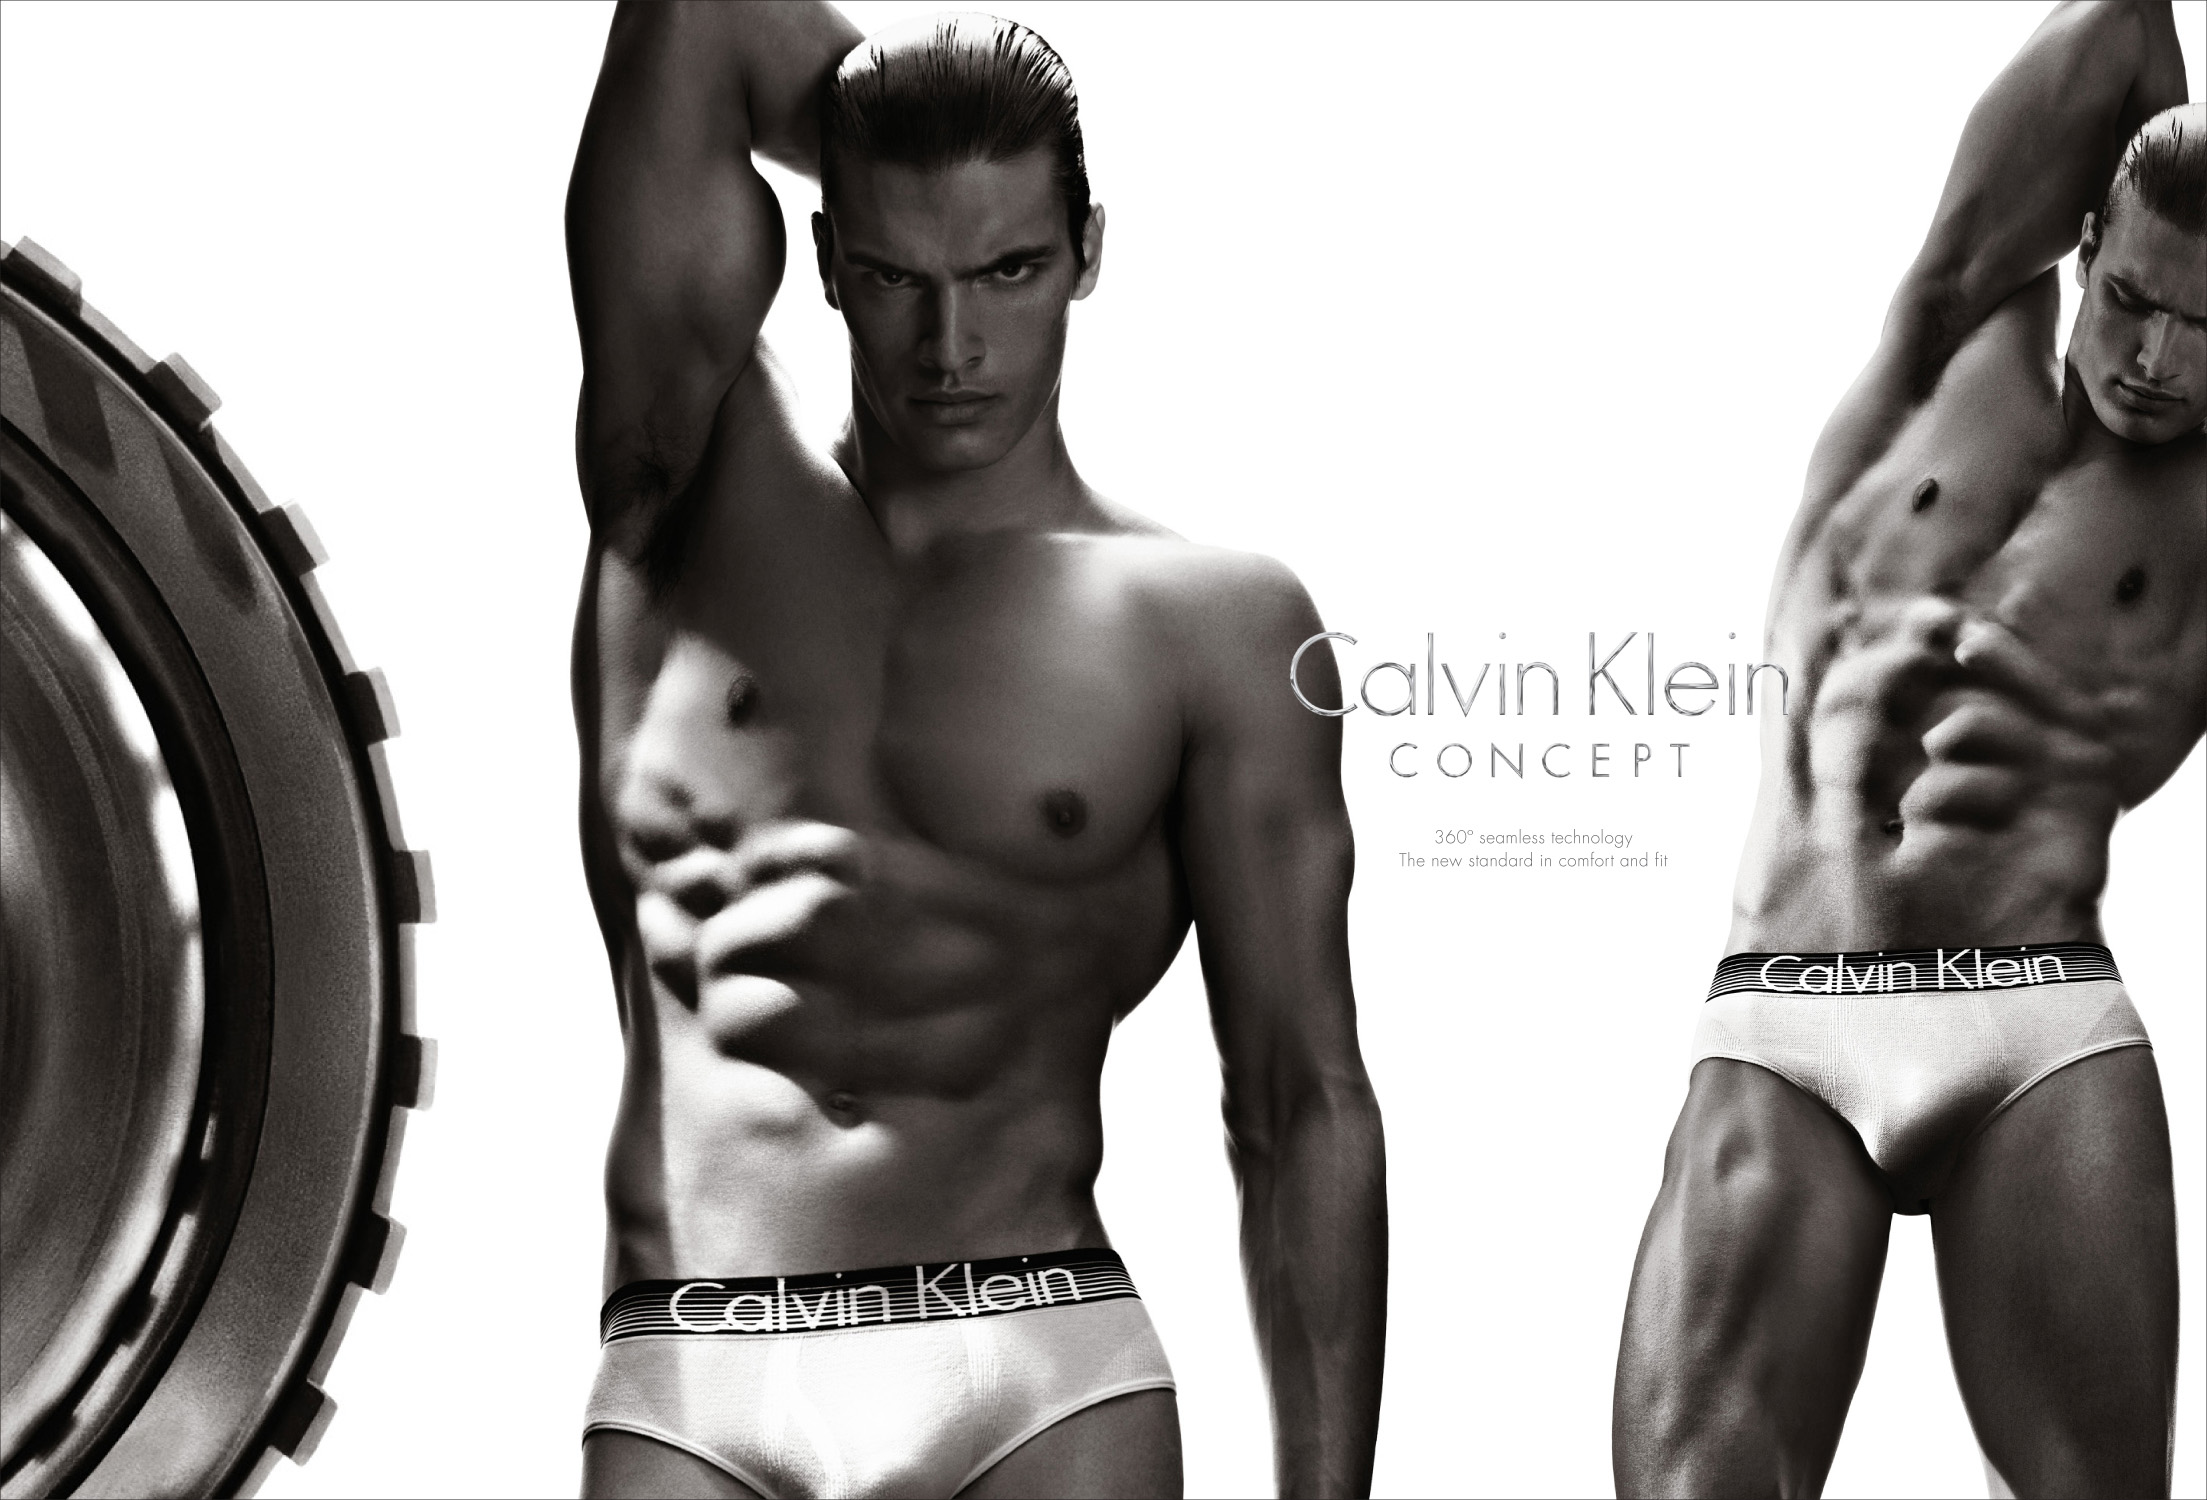 For black and white calvin klein ad reply)))